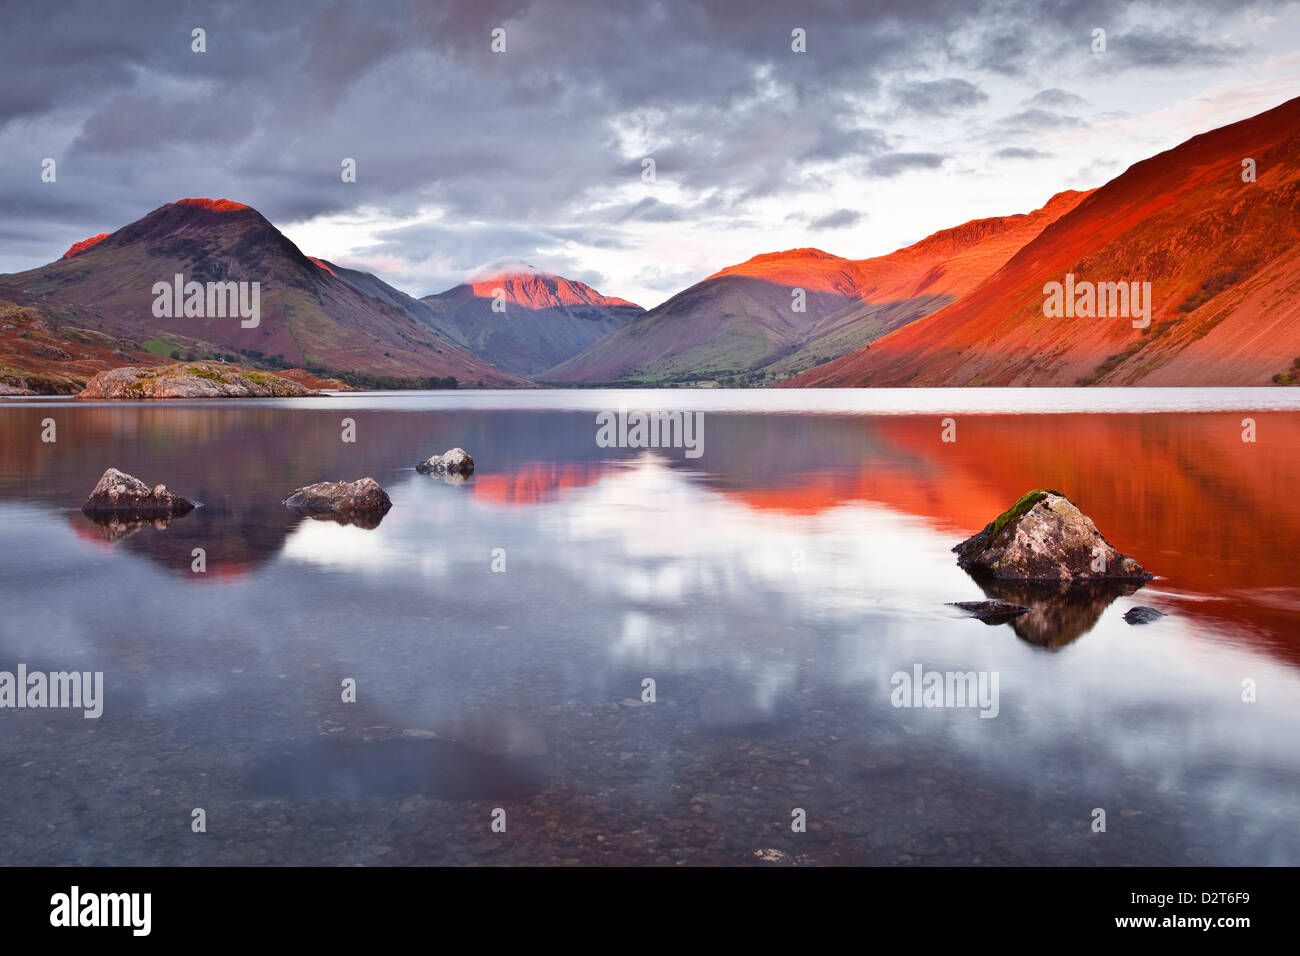 The Scafell range across the reflective waters of Wast Water in the Lake District National Park, Cumbria, England, - Stock Image